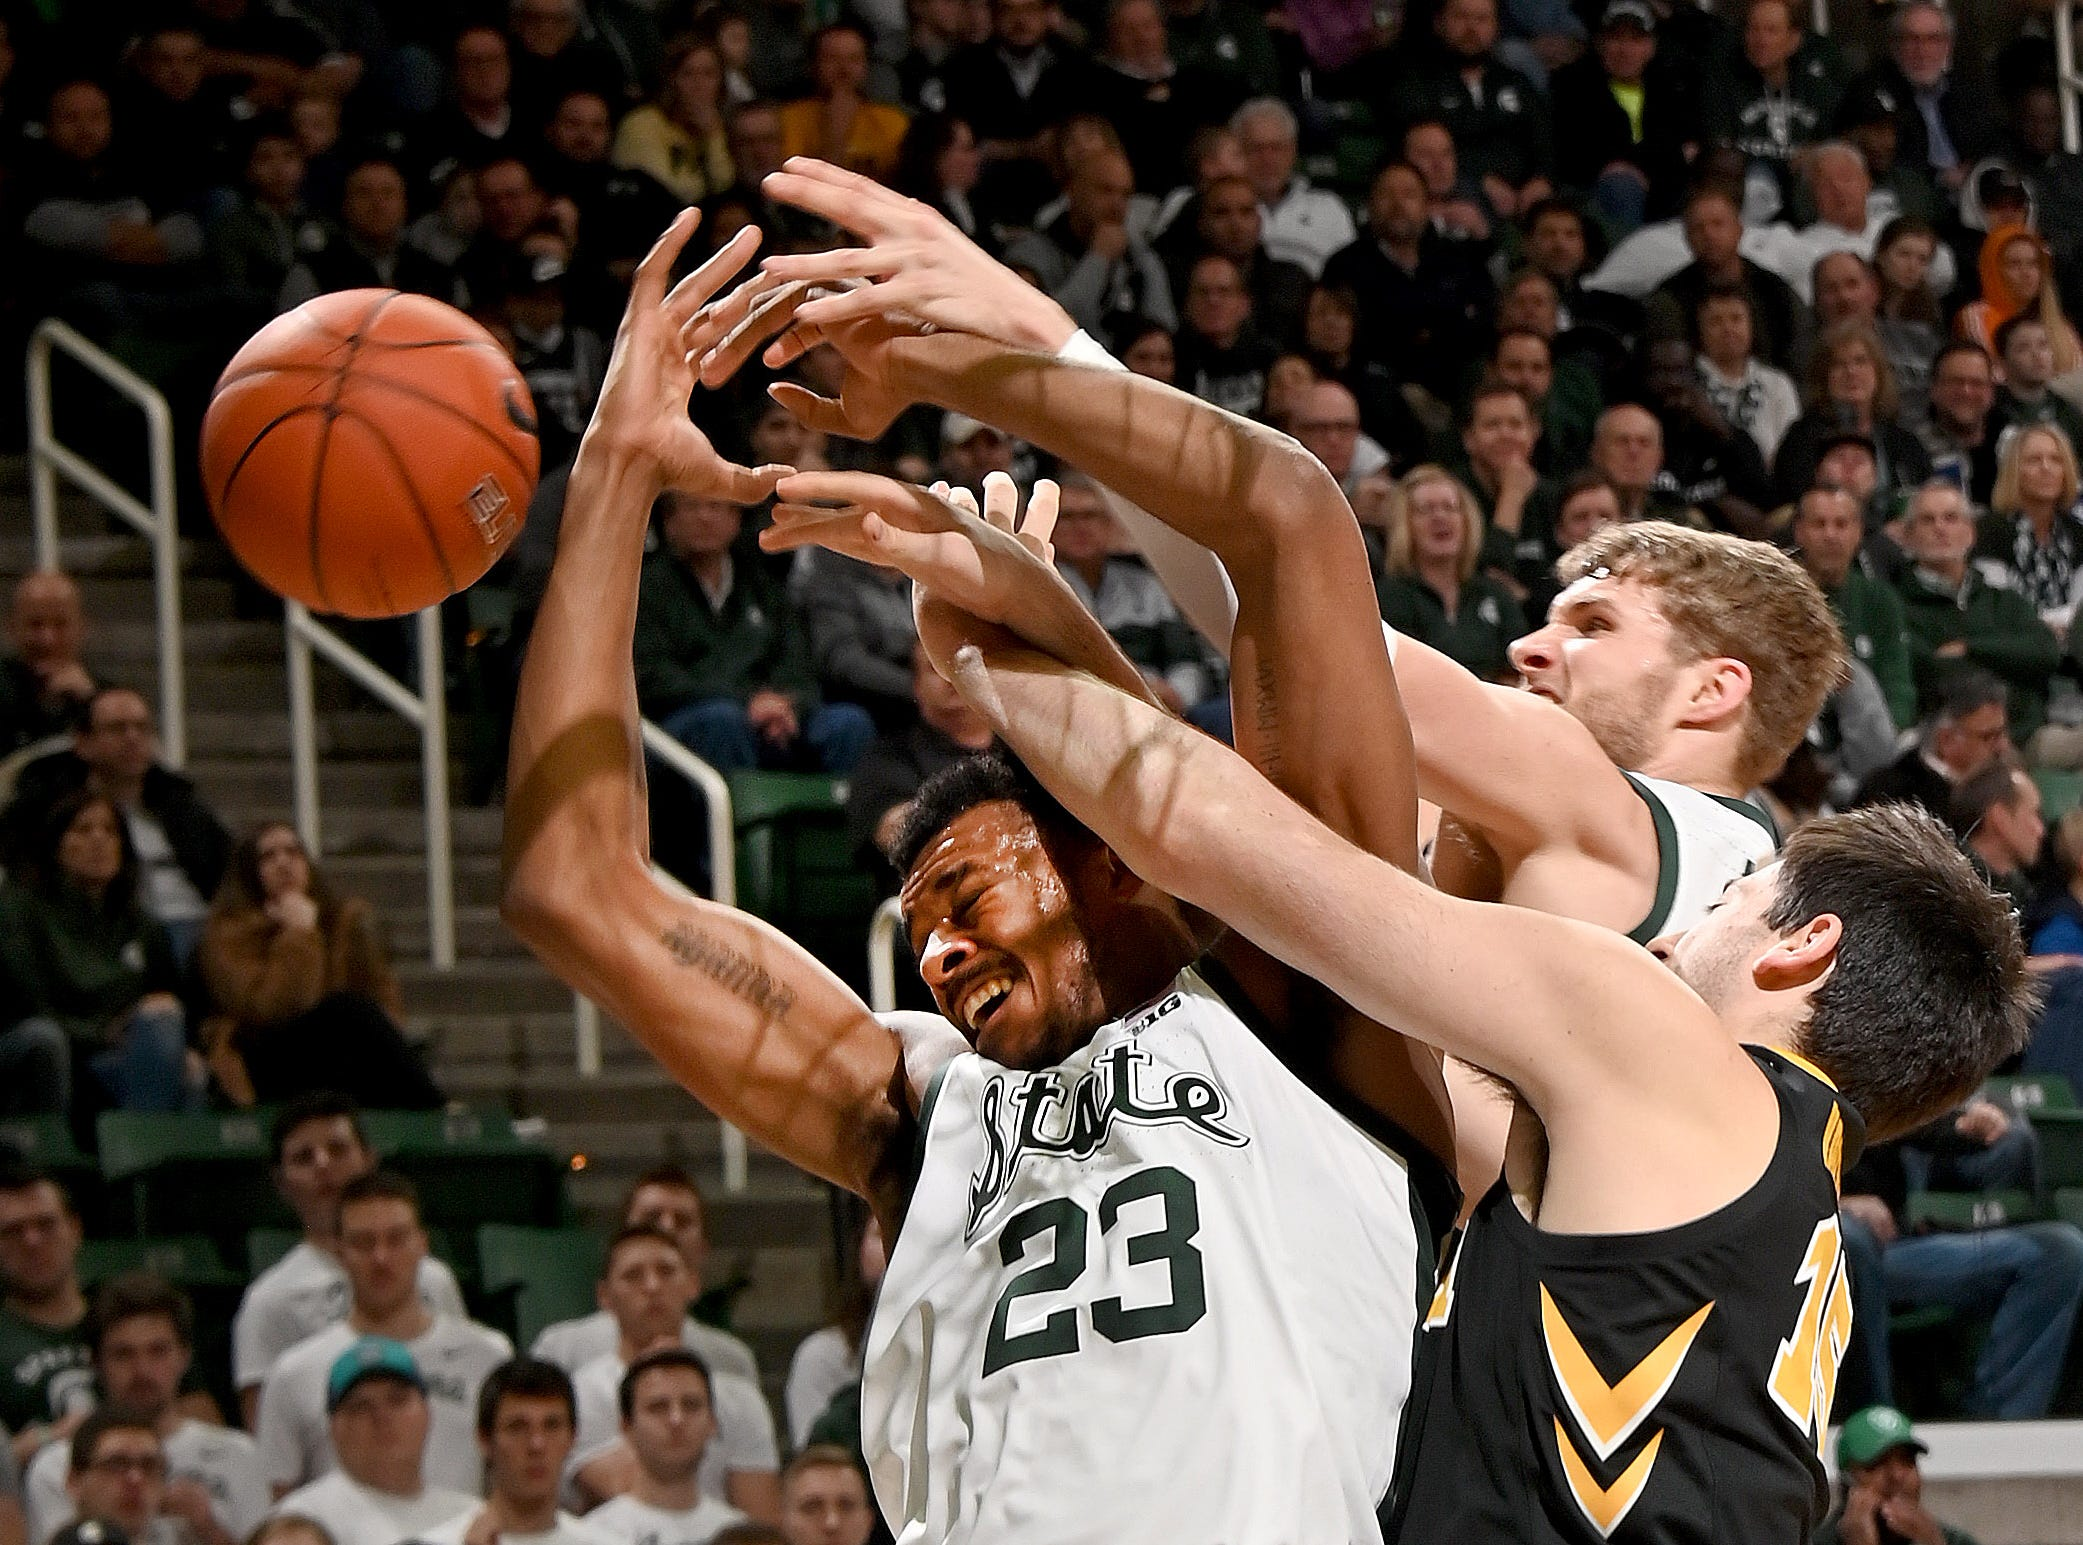 Xavier Tillman (23) gets fouled under the Spartan basket while battling for a rebound in the second half.